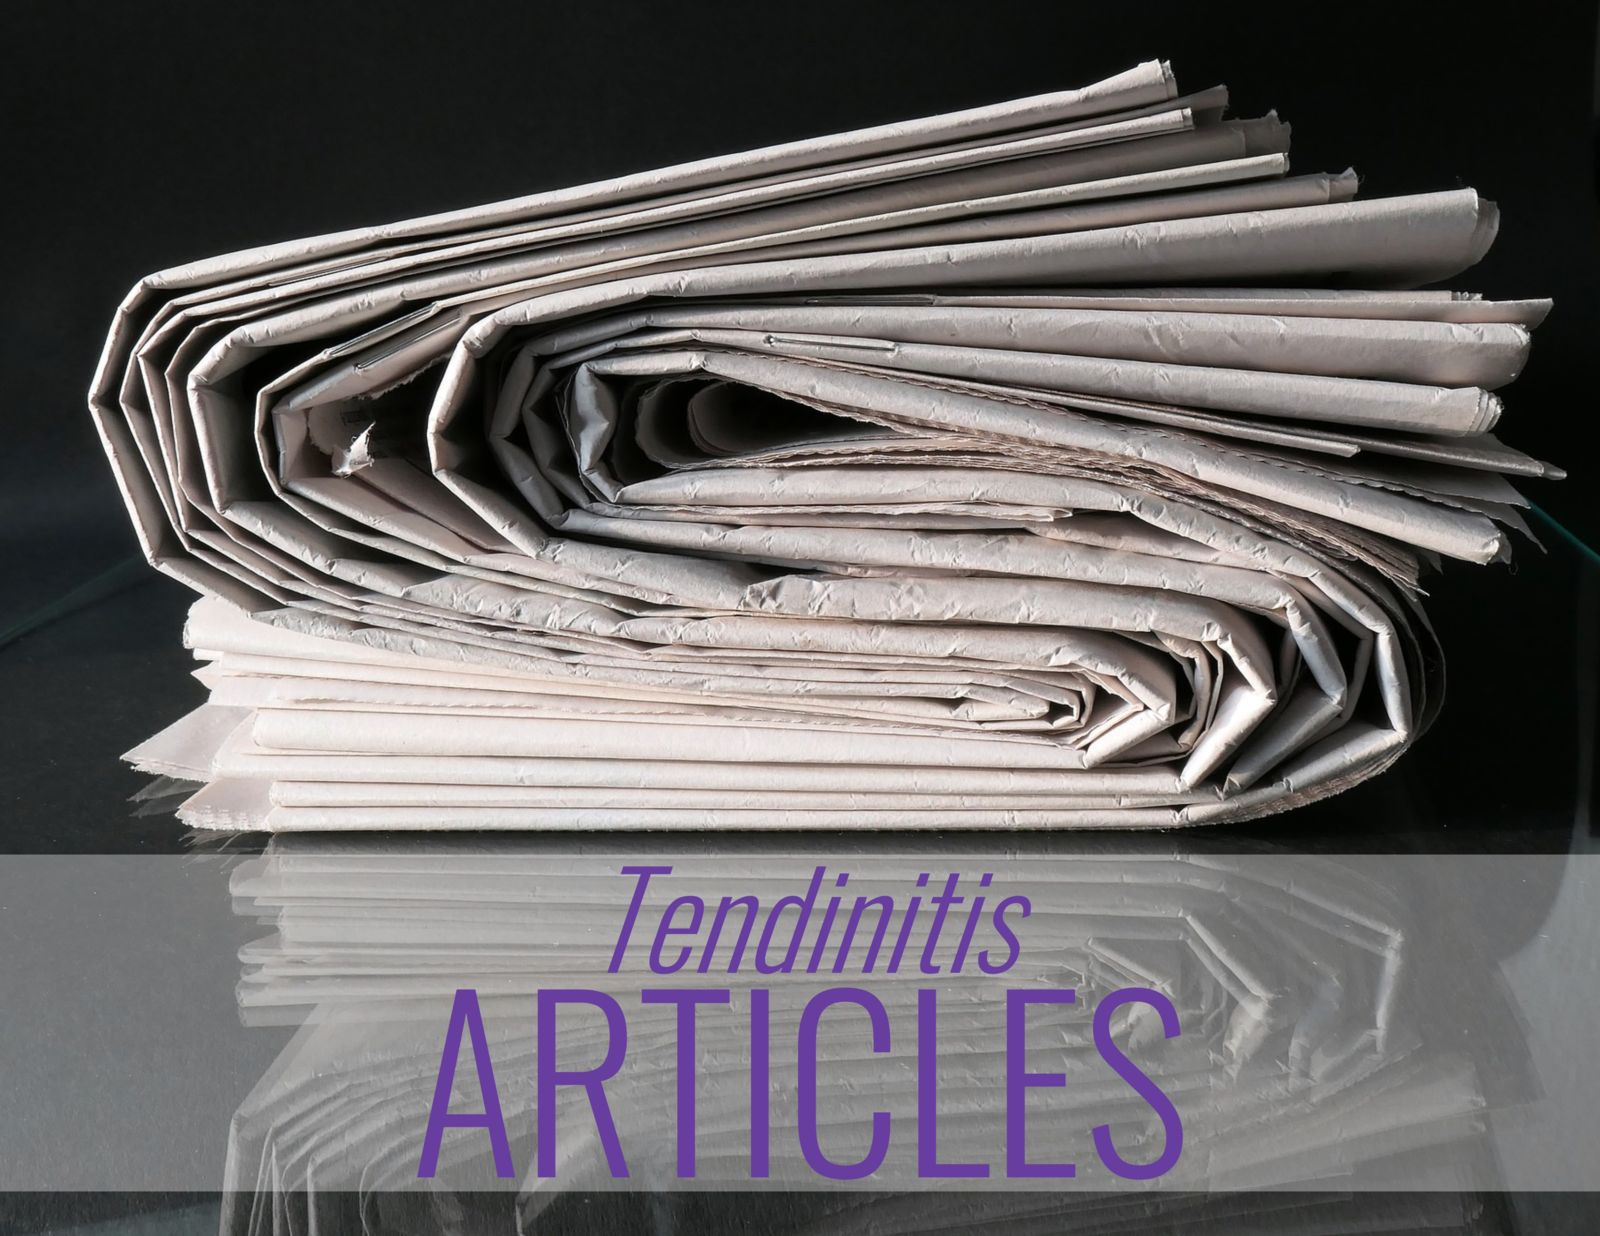 newspapers with the words Tendinitis Articles